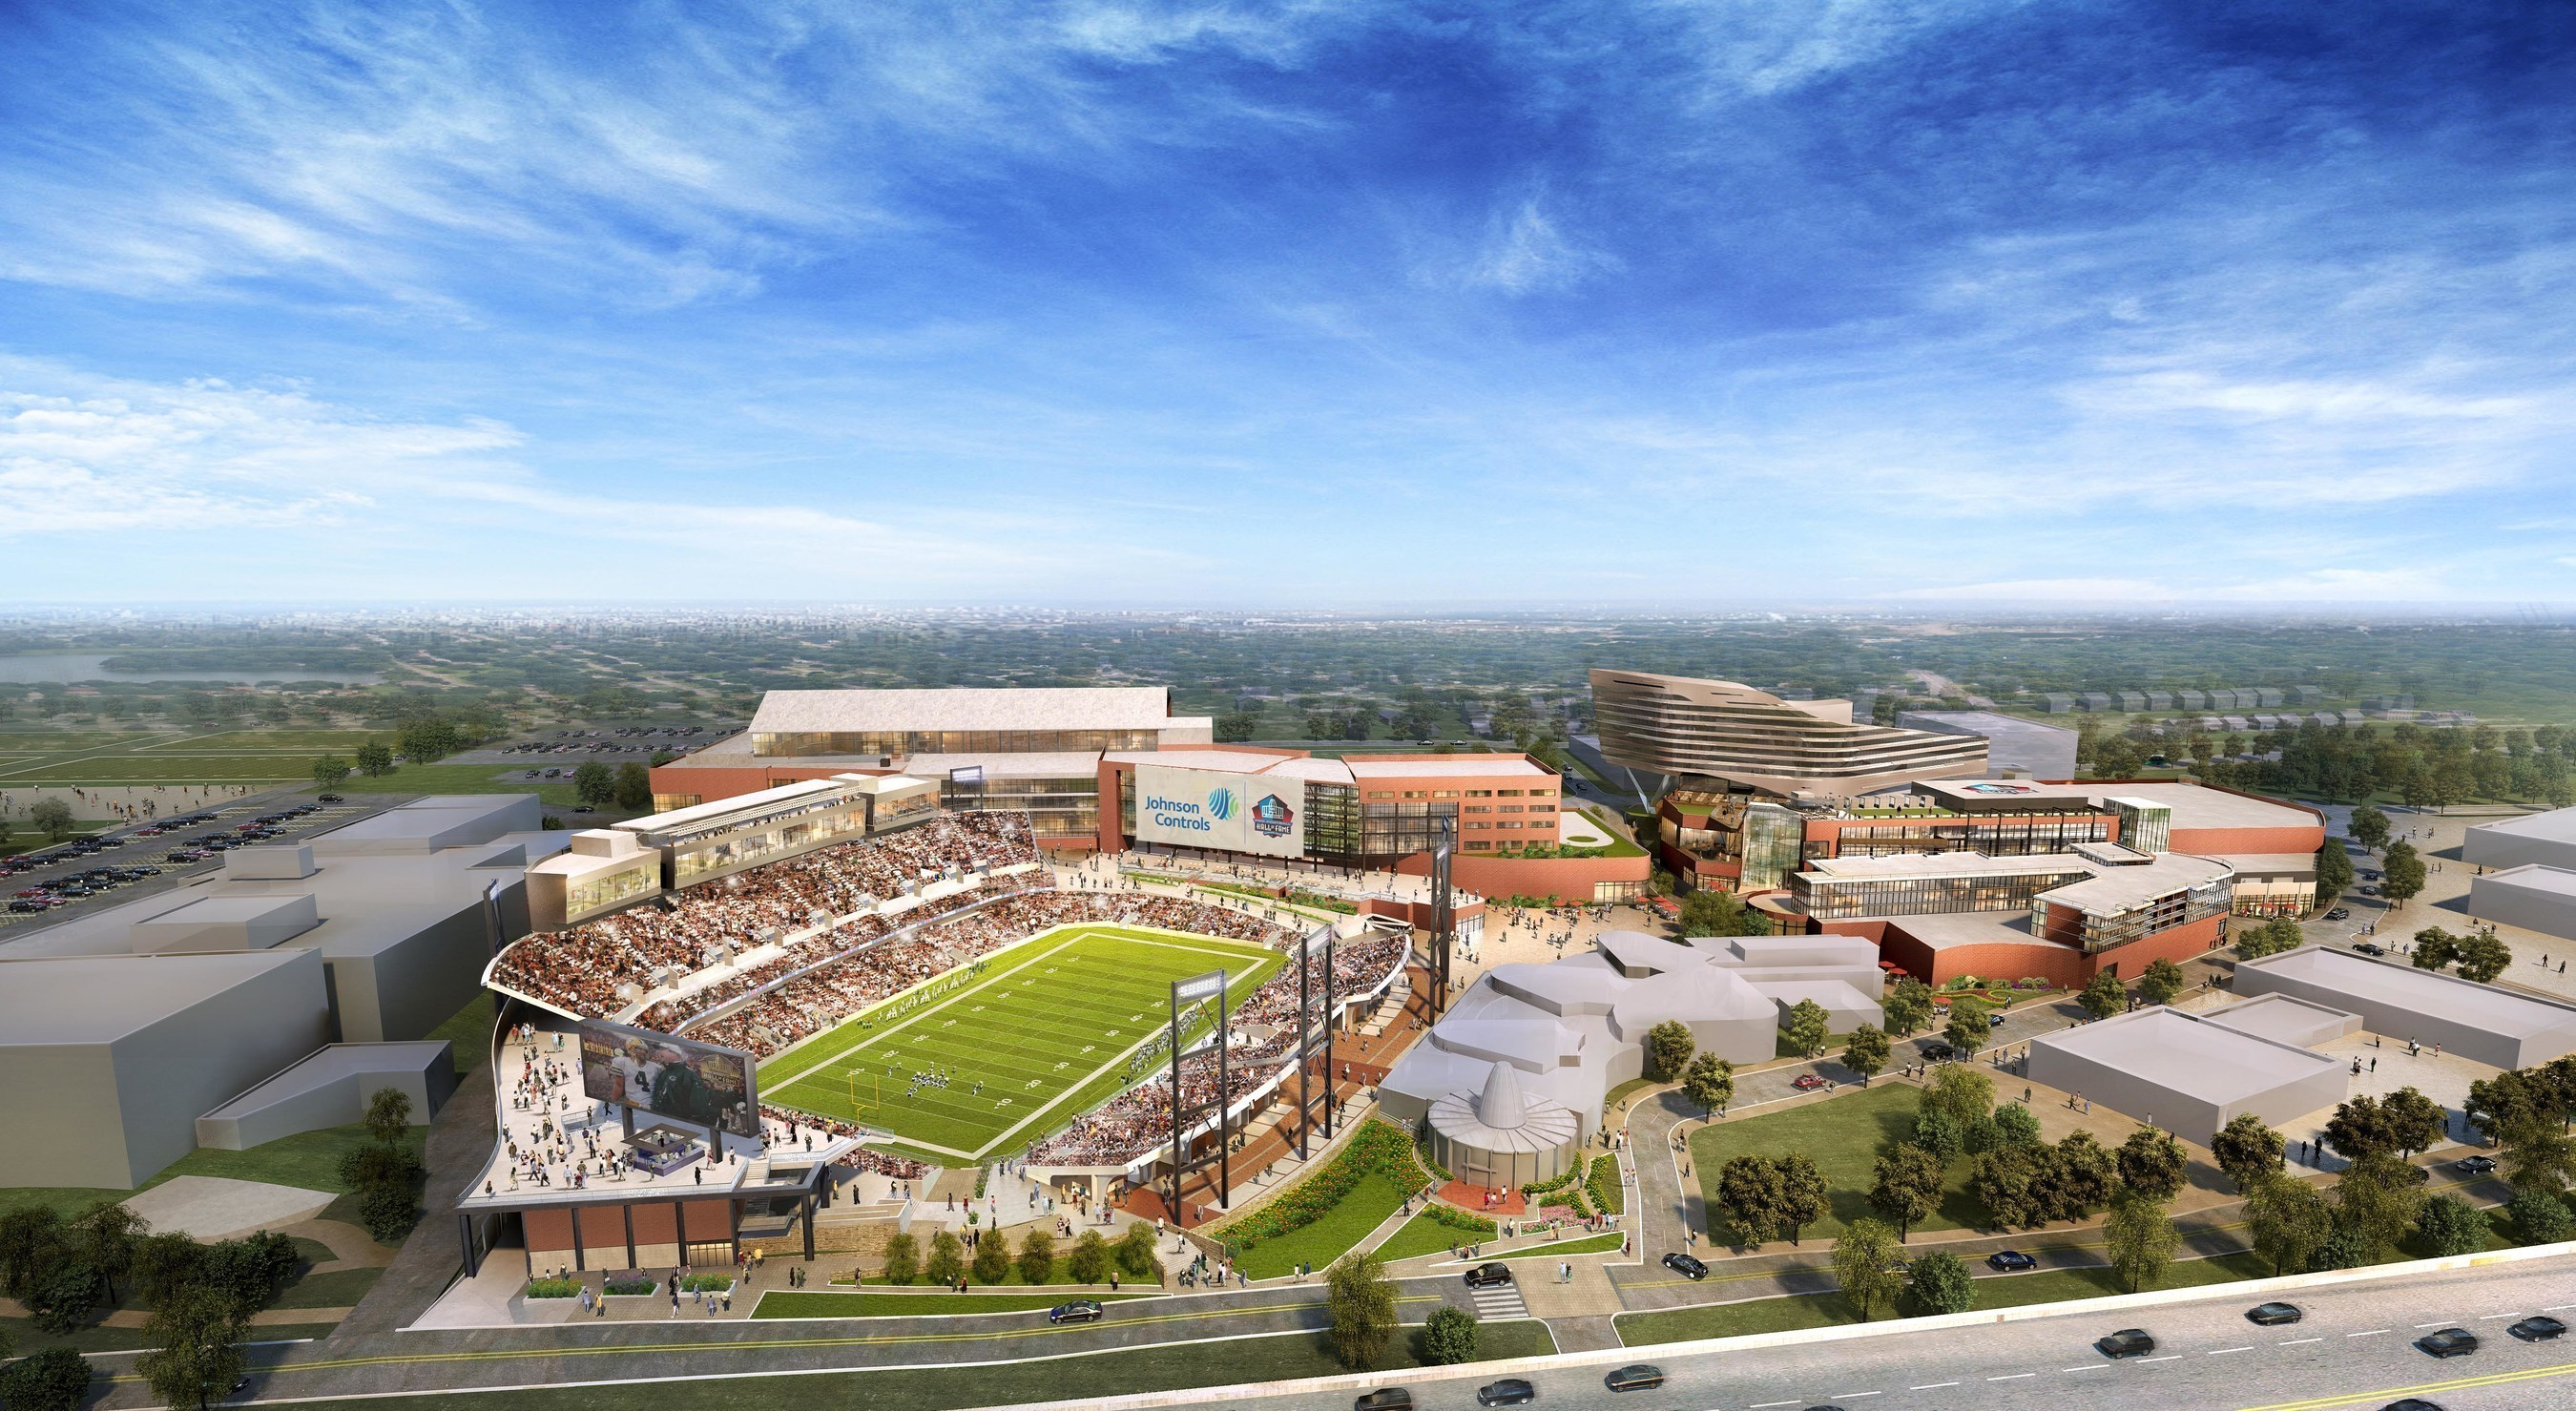 """Johnson Controls and Hall of Fame Village LLC (a partnership between the Pro Football Hall of Fame and Industrial Realty Group) have entered into a historic 18-year agreement to create the first sports and entertainment """"smart city"""" that will carry the name Johnson Controls Hall of Fame Village."""